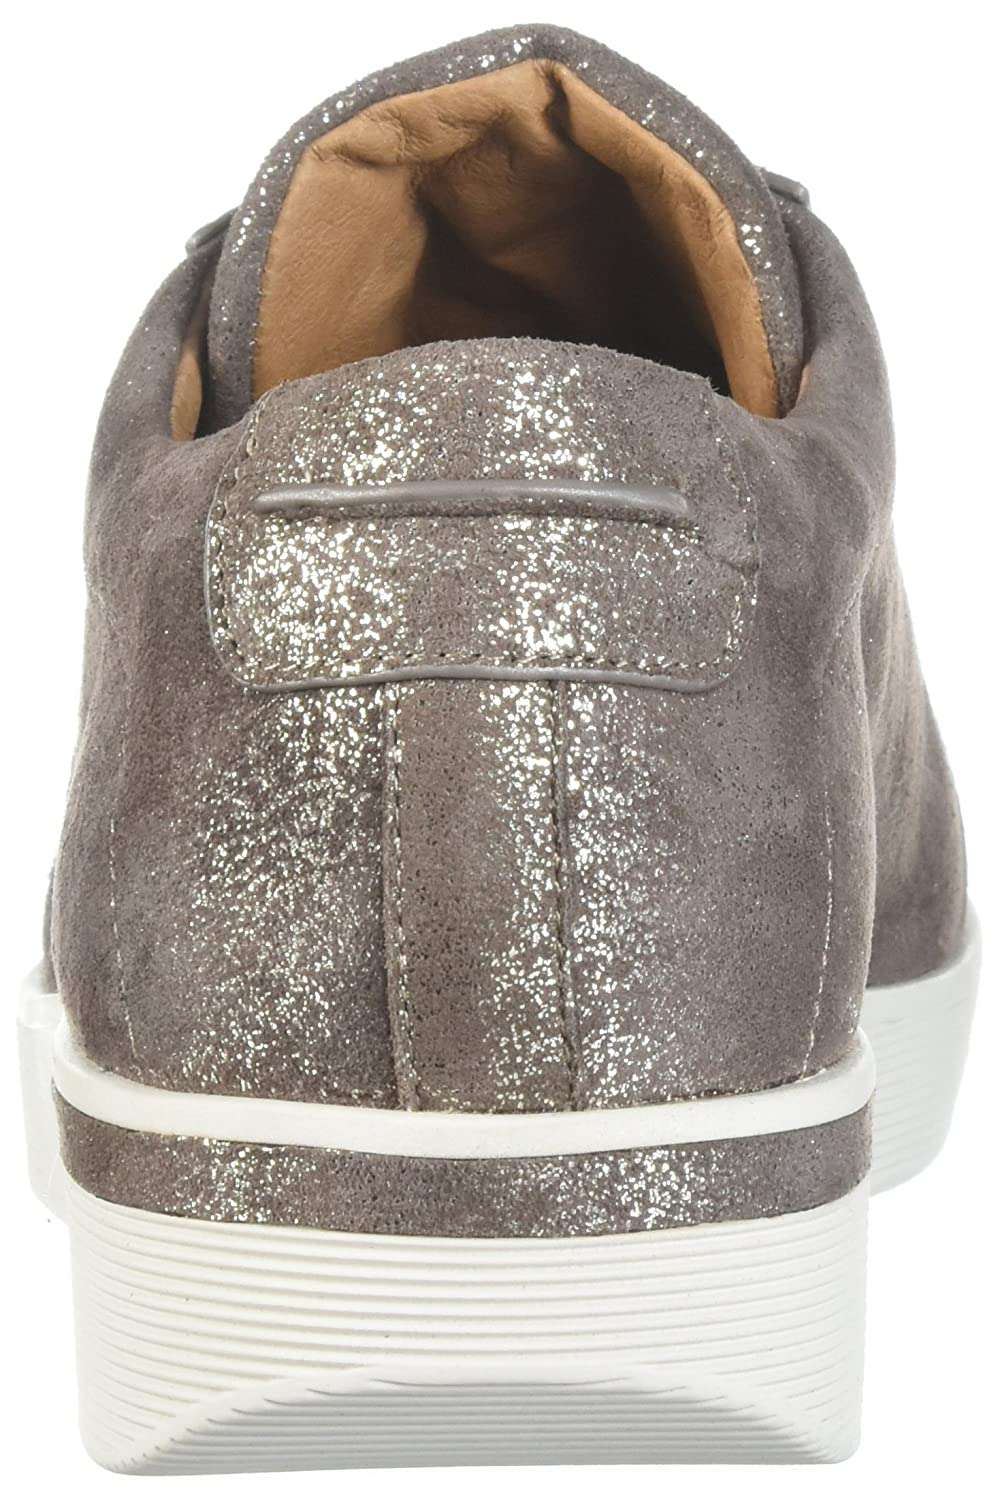 Gentle Souls by Kenneth Cole Women's Haddie Low Profile Fashion Sneaker Embossed Fashion Sneaker B076V8KS8D 8.5 M US|Cocoa